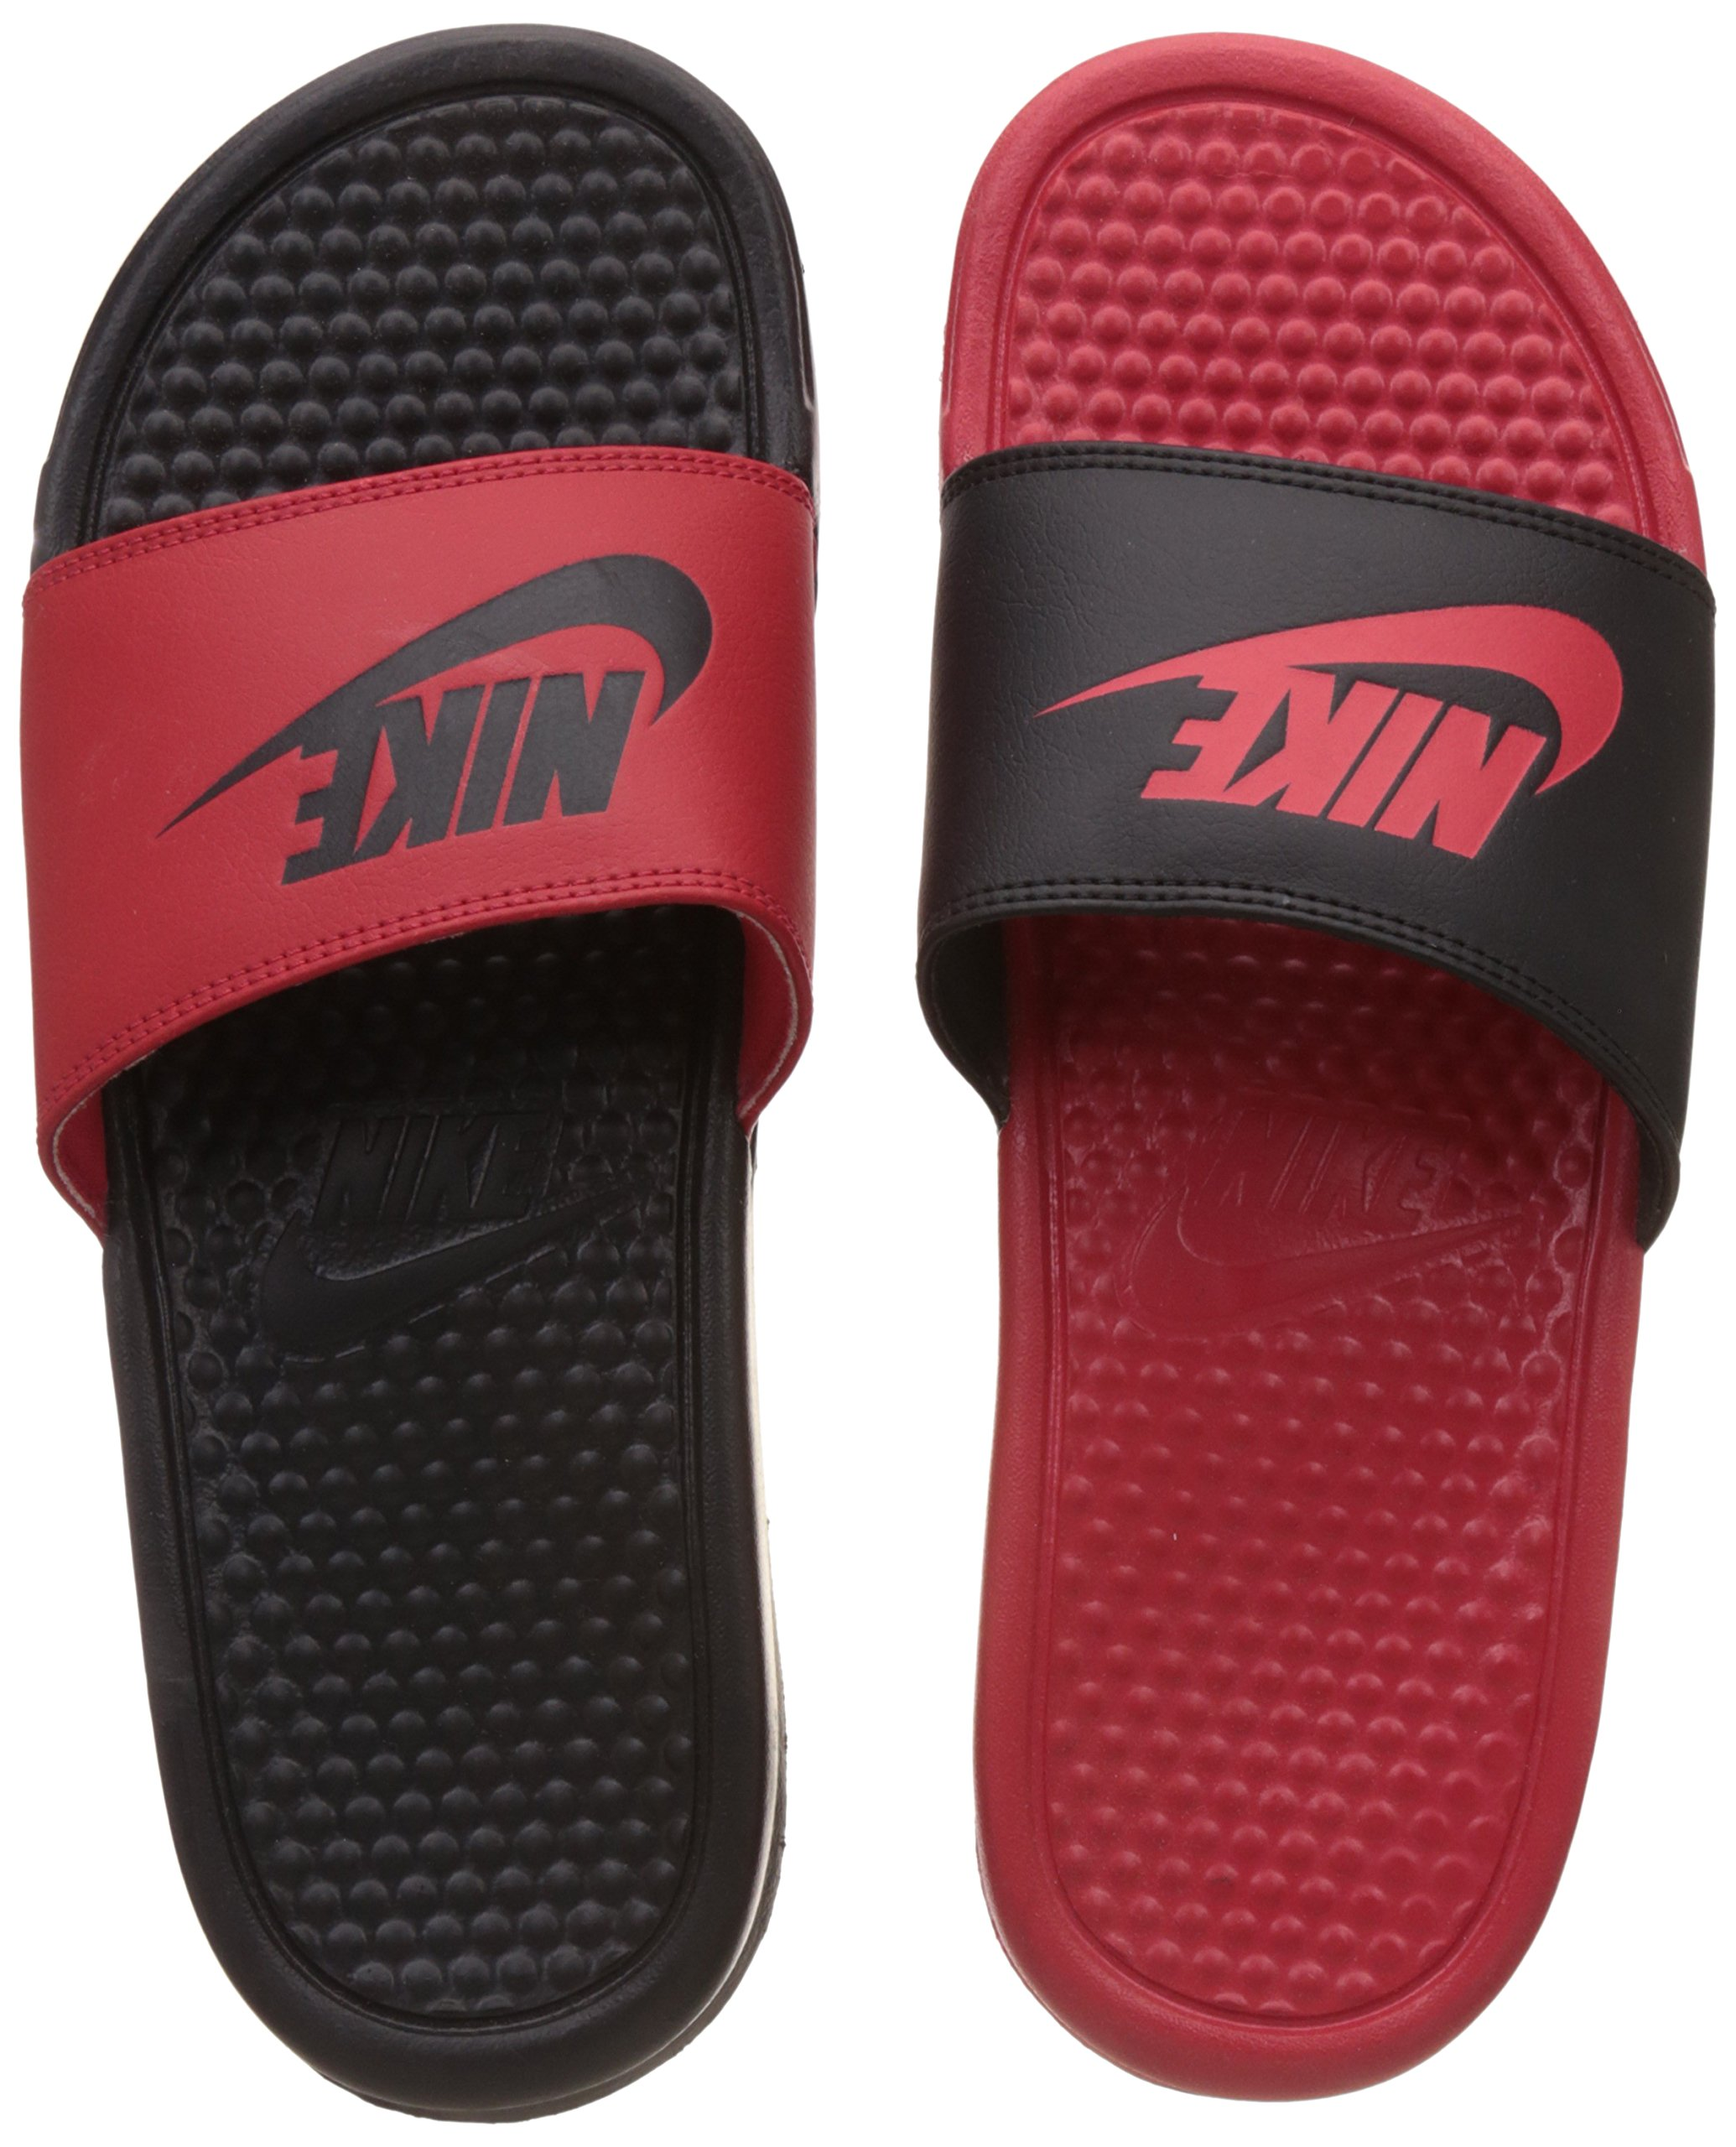 huge discount 7ff19 cb5ae Galleon - Nike Men s Benassi JDI Missmatch Sandals, University Red Black,  818736-600 (14 D(M) US)